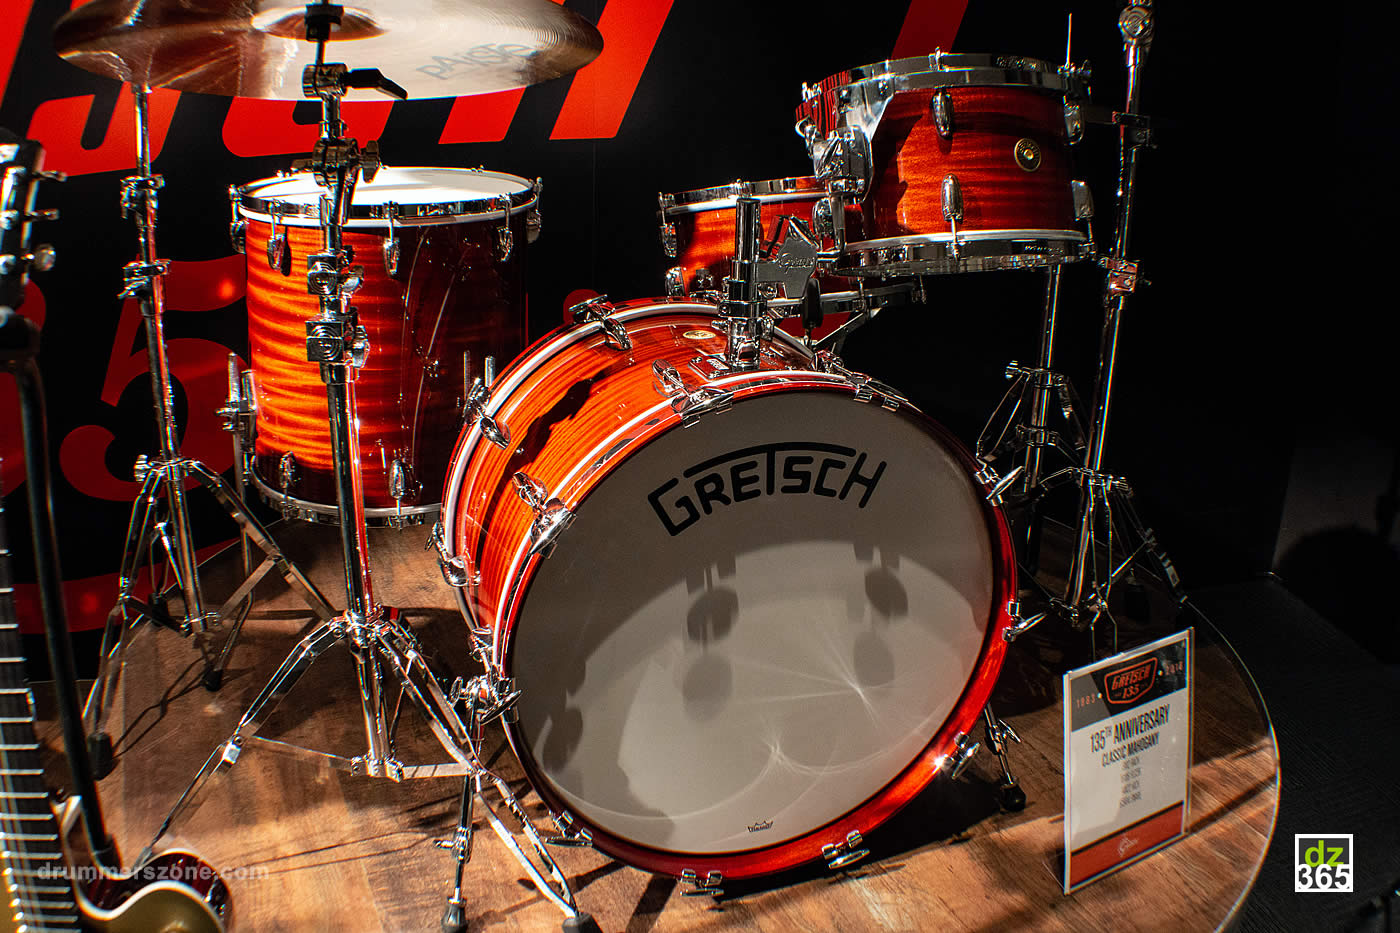 The Classic Mahogany Gretsch 135th anniversary kit